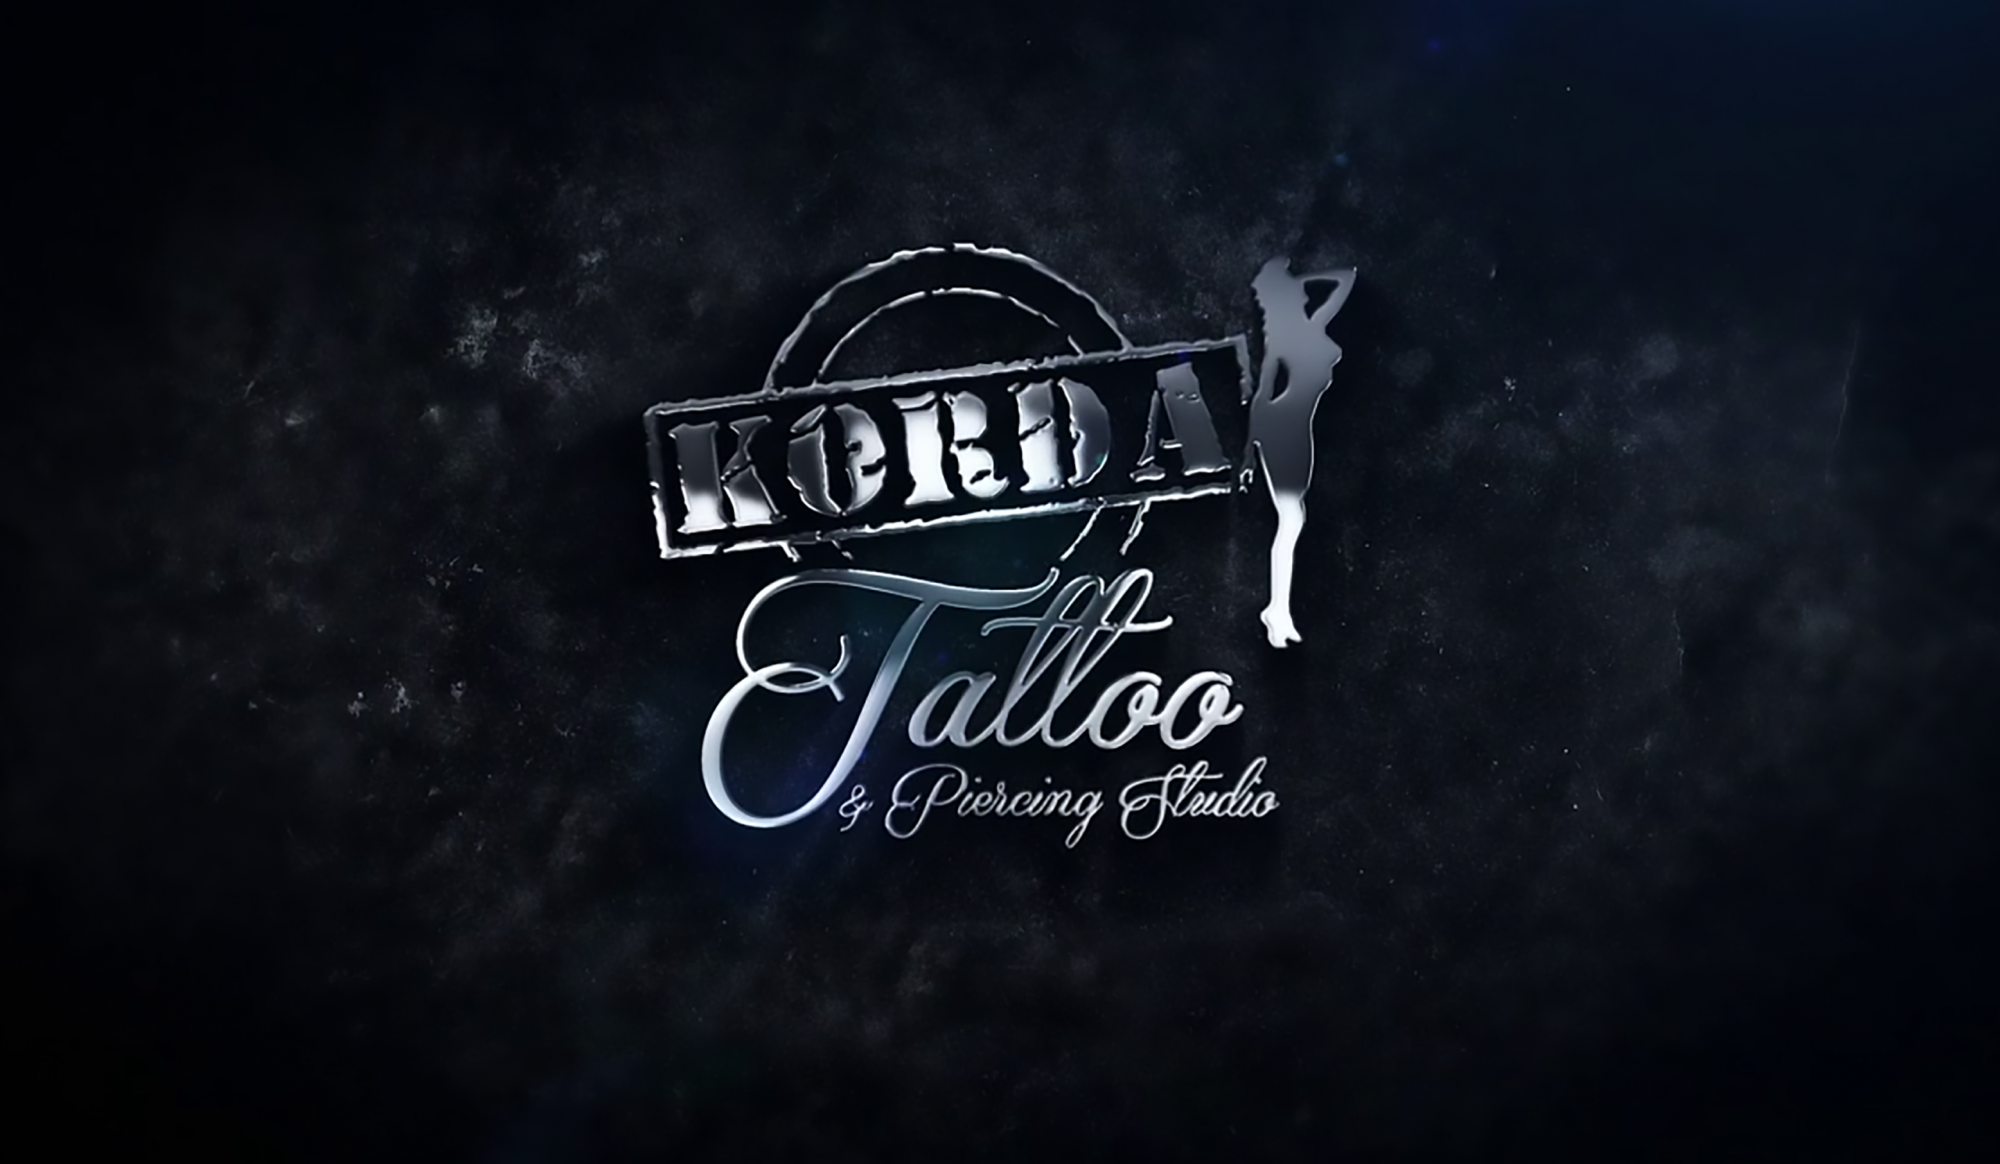 Korda Tattoo&Piercing Studio